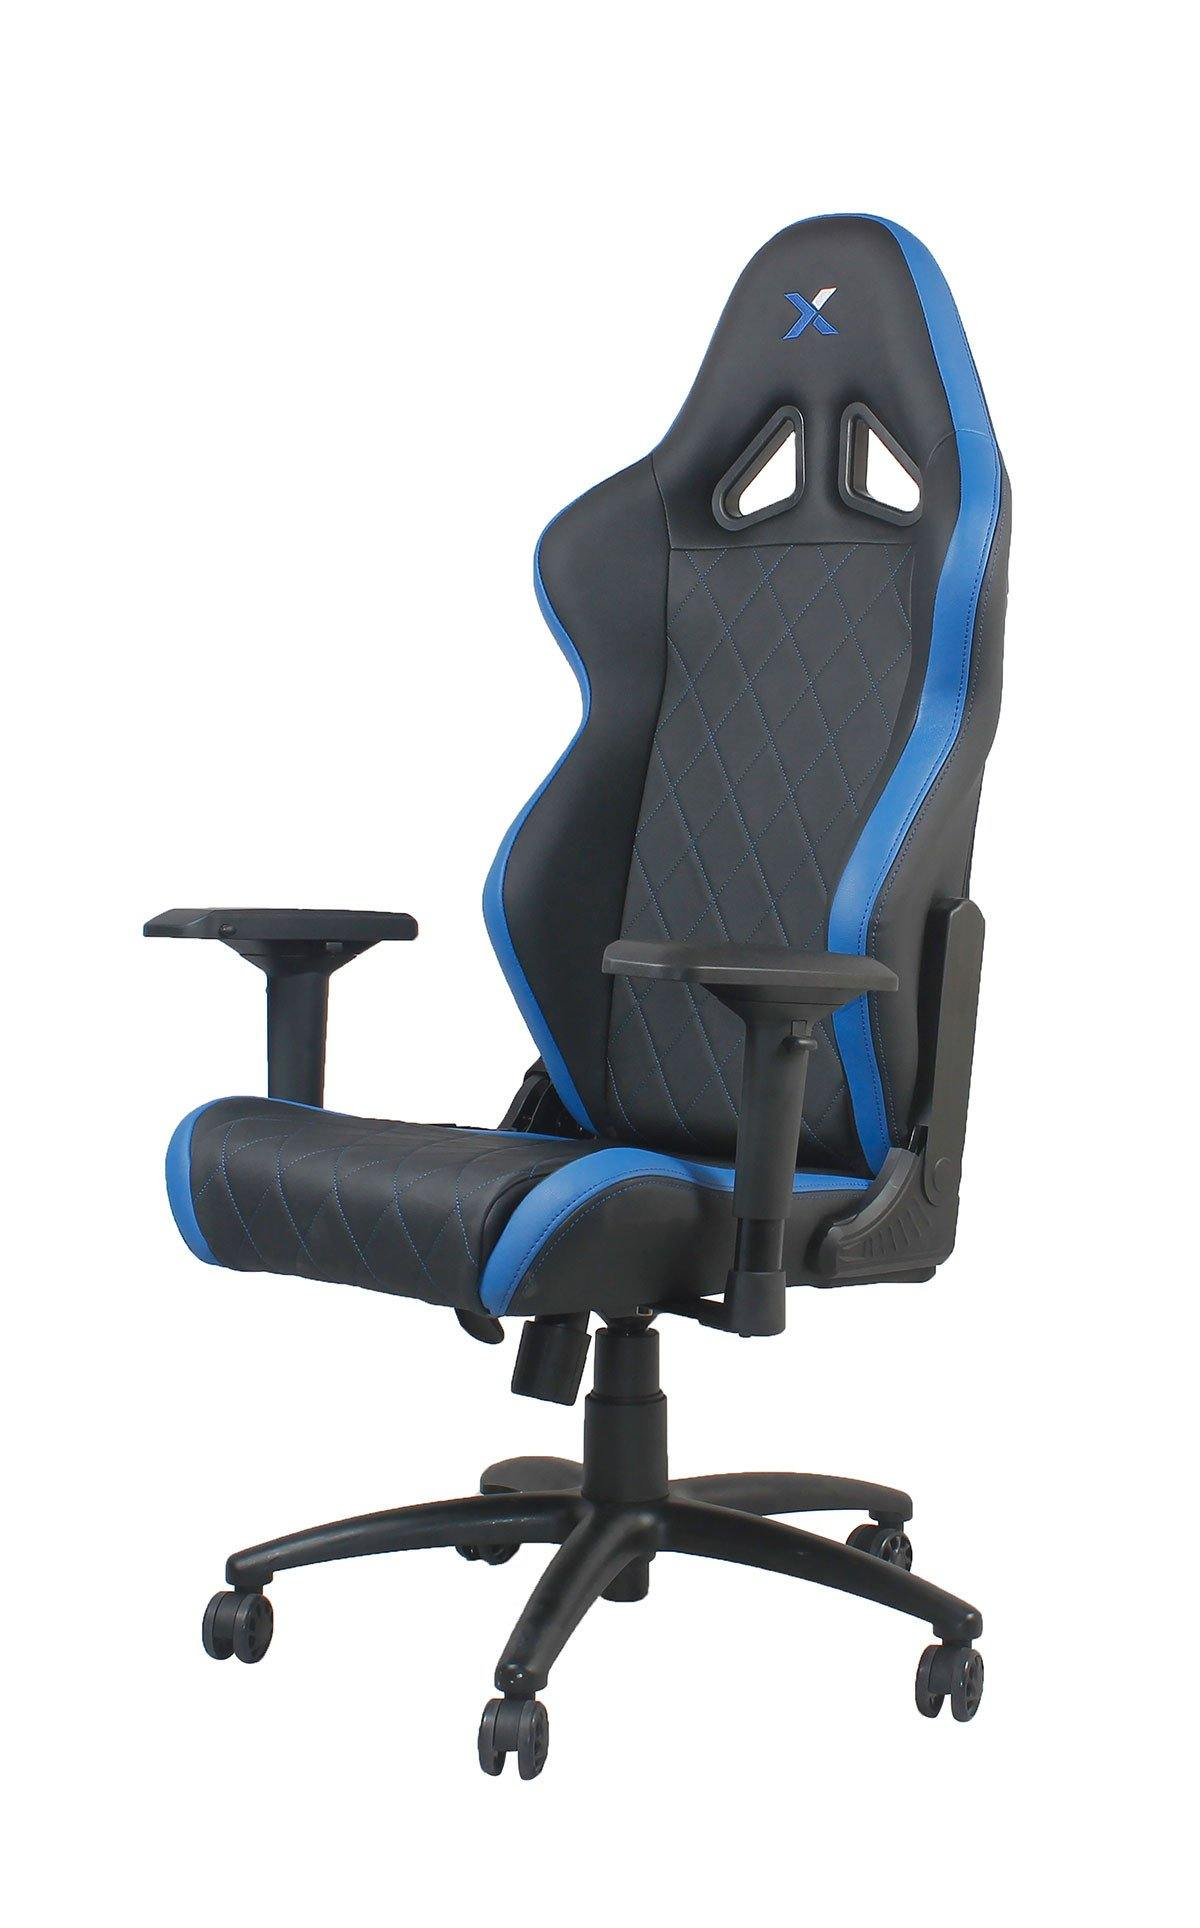 Ferrino Chair - Blue on Black